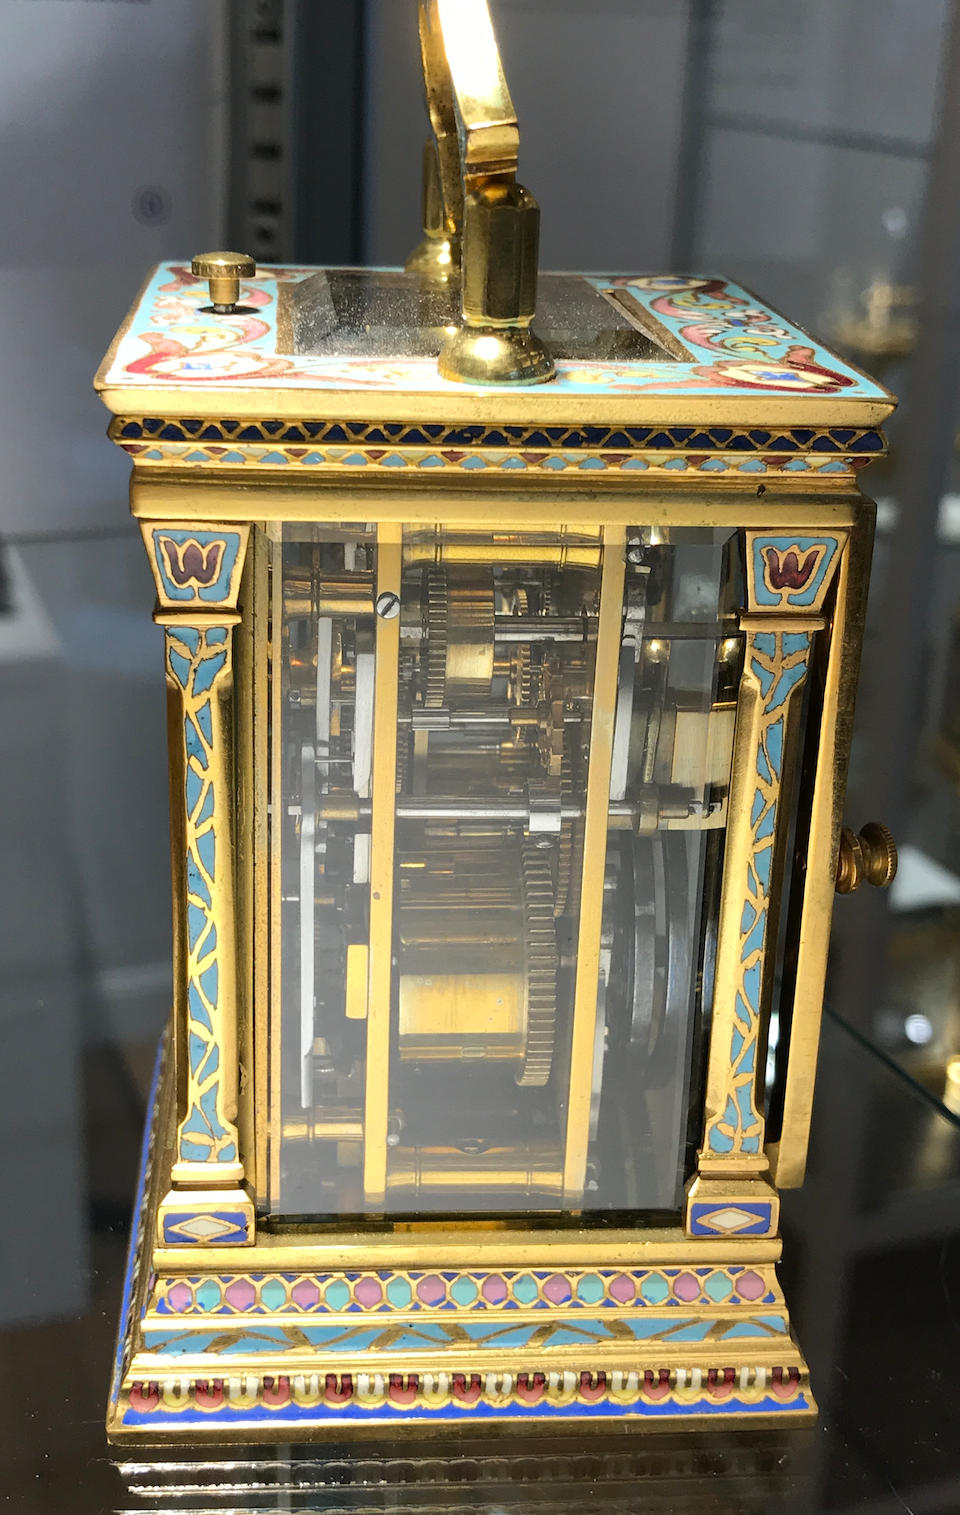 A fine cloisonné enamel quarter repeating miniature carriage clock with center seconds and alarmLate 19th century